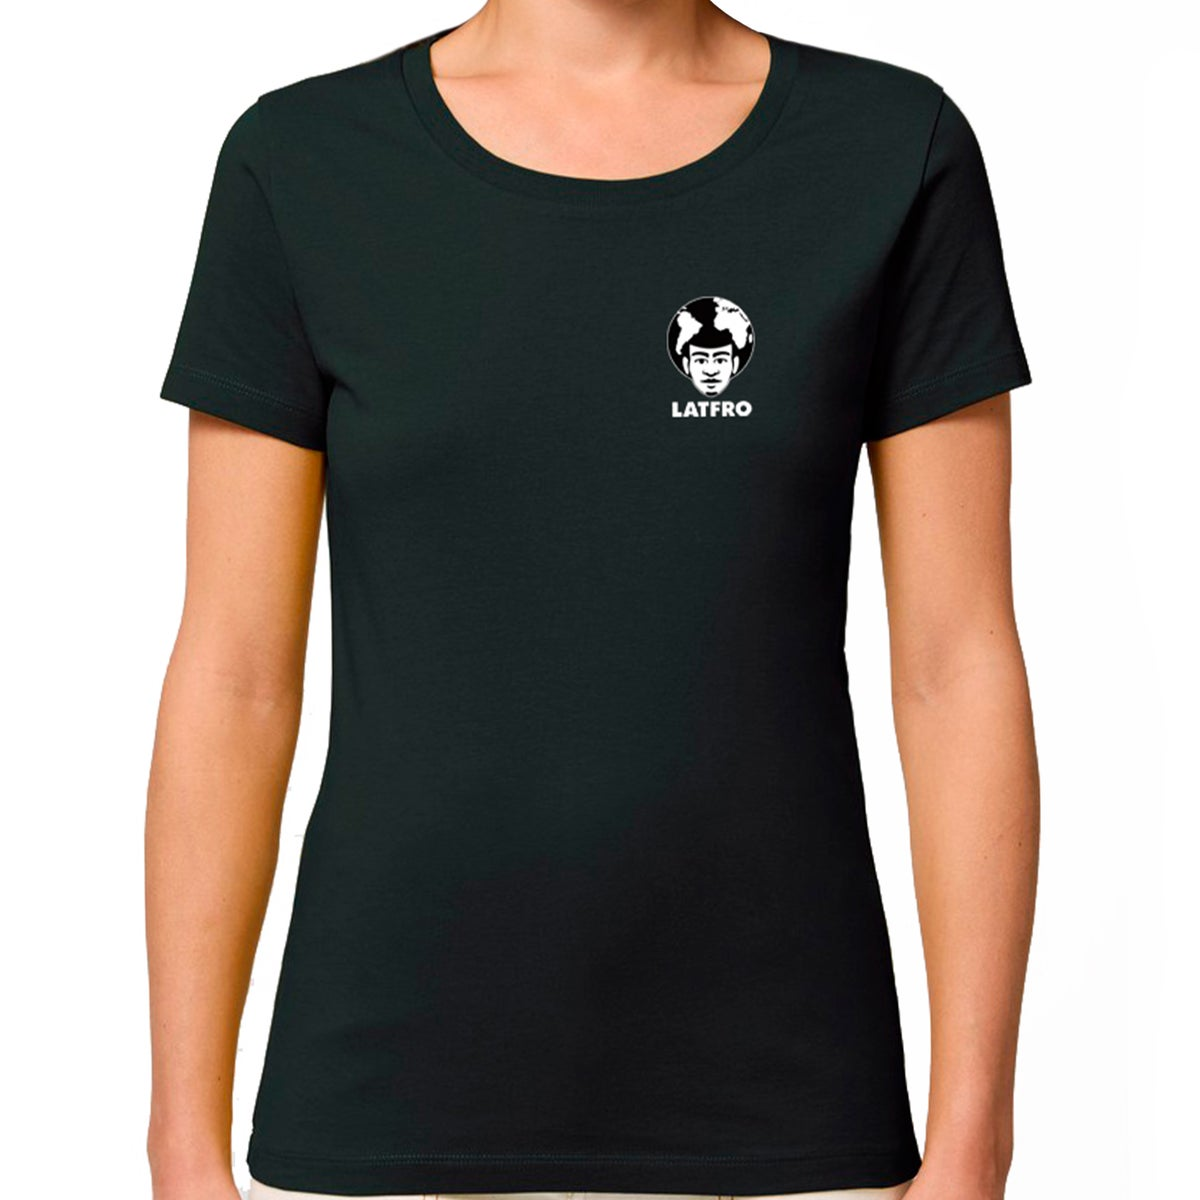 Latfro Female Short Sleeve T-Shirt